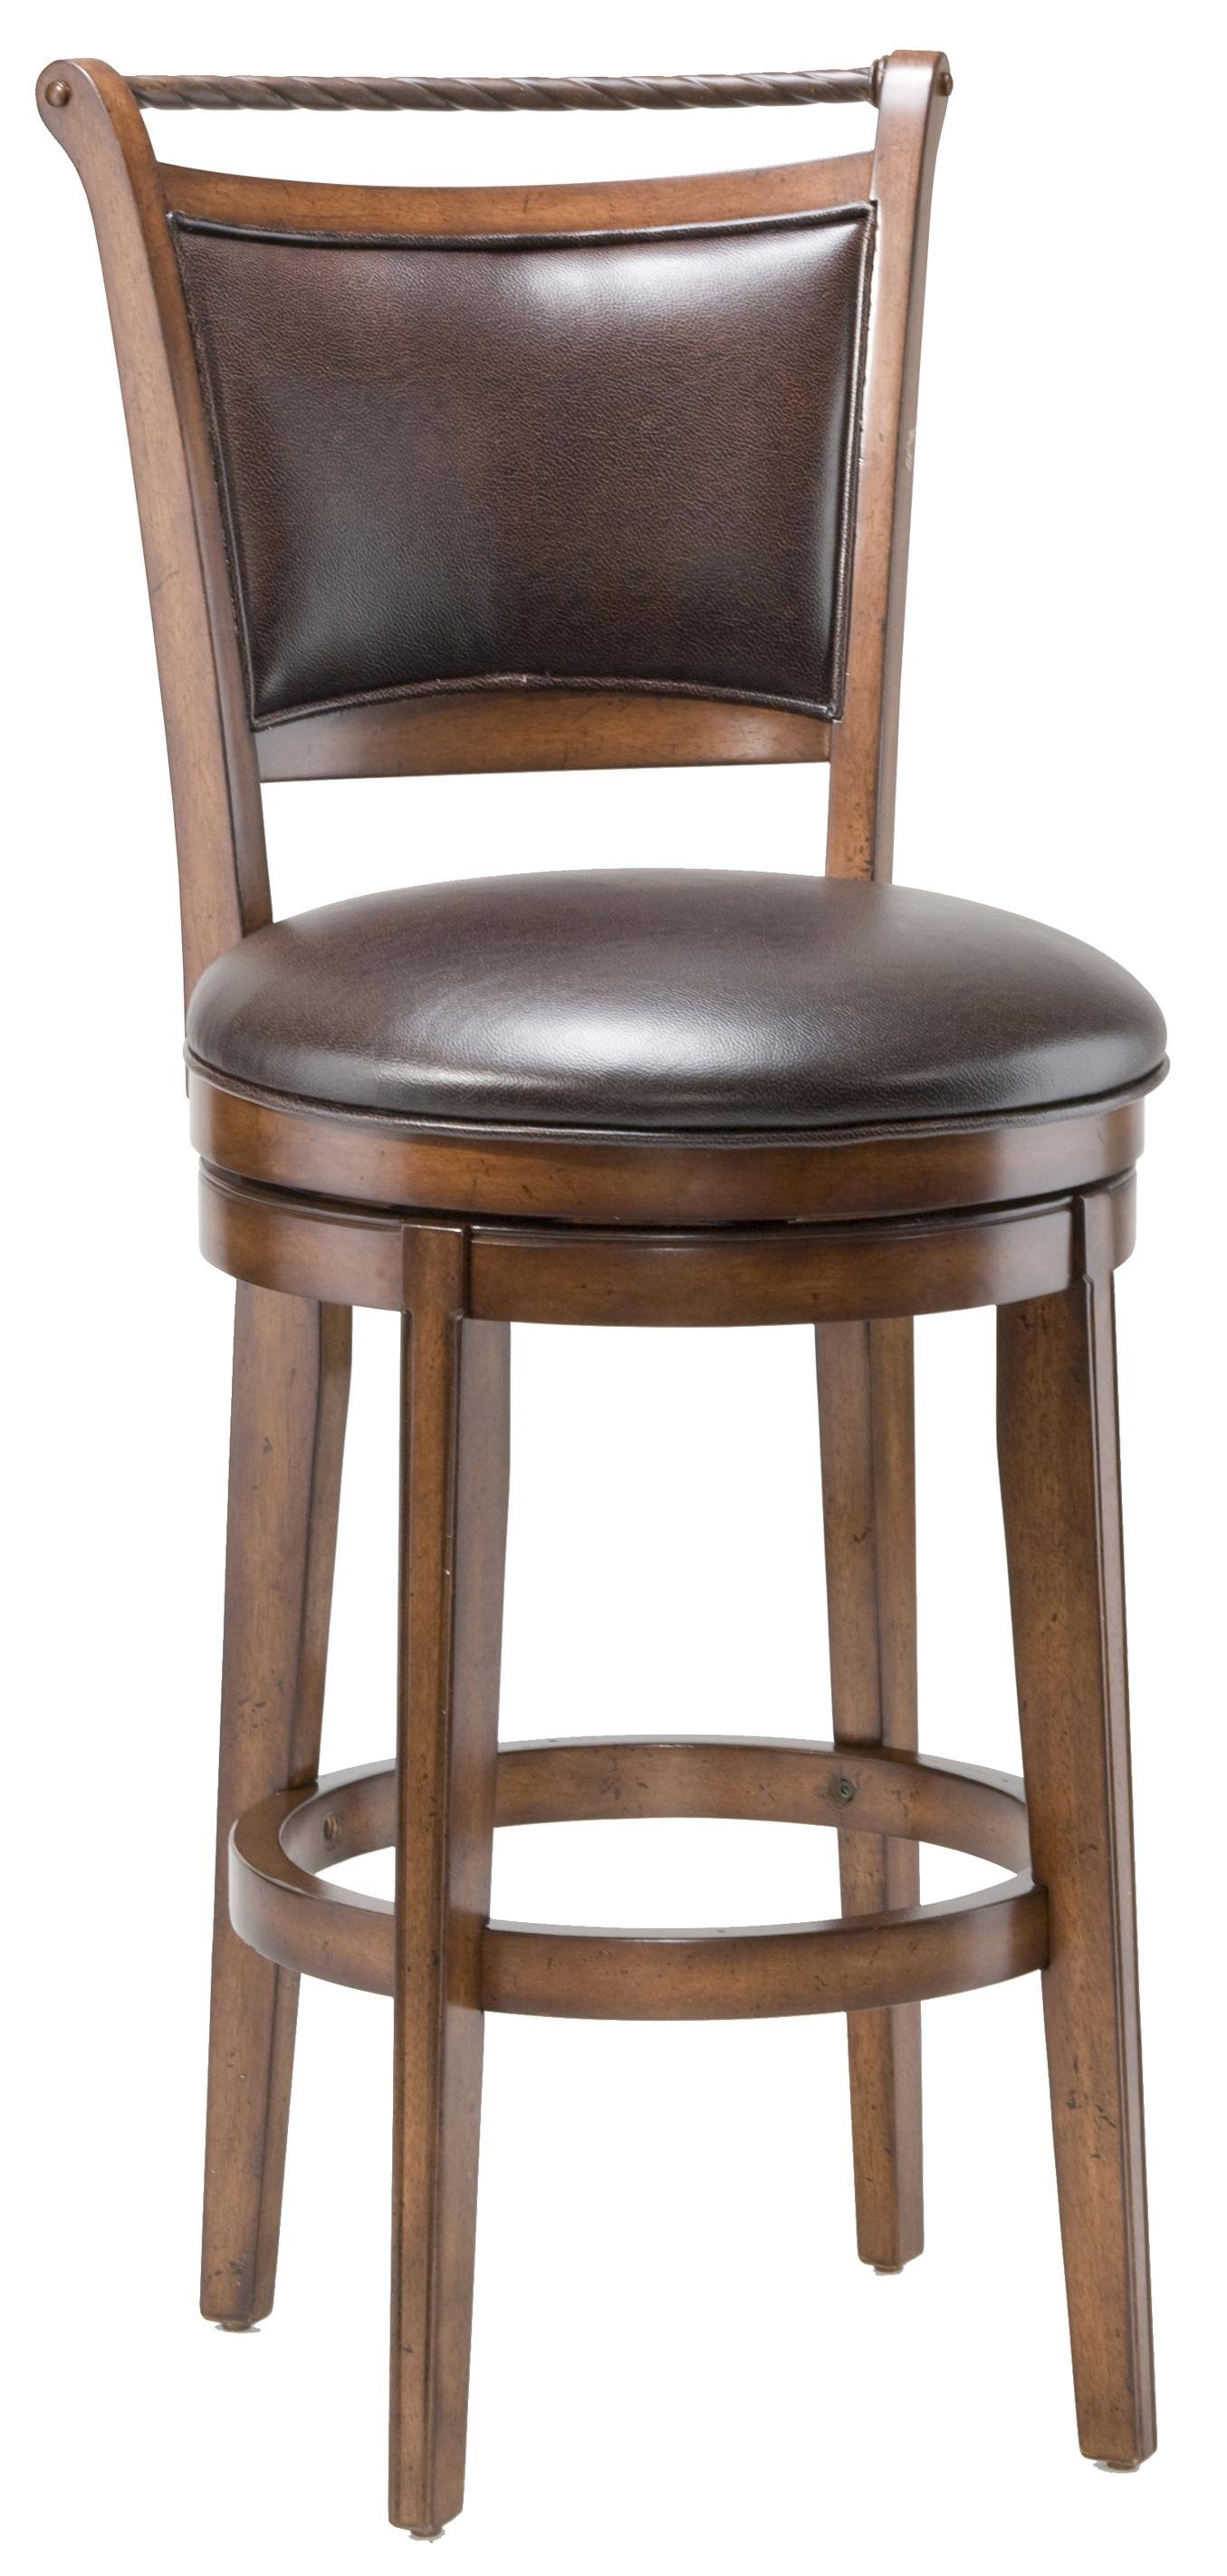 Wood Stools 30 Quot Bar Height Calais Swivel Stool By